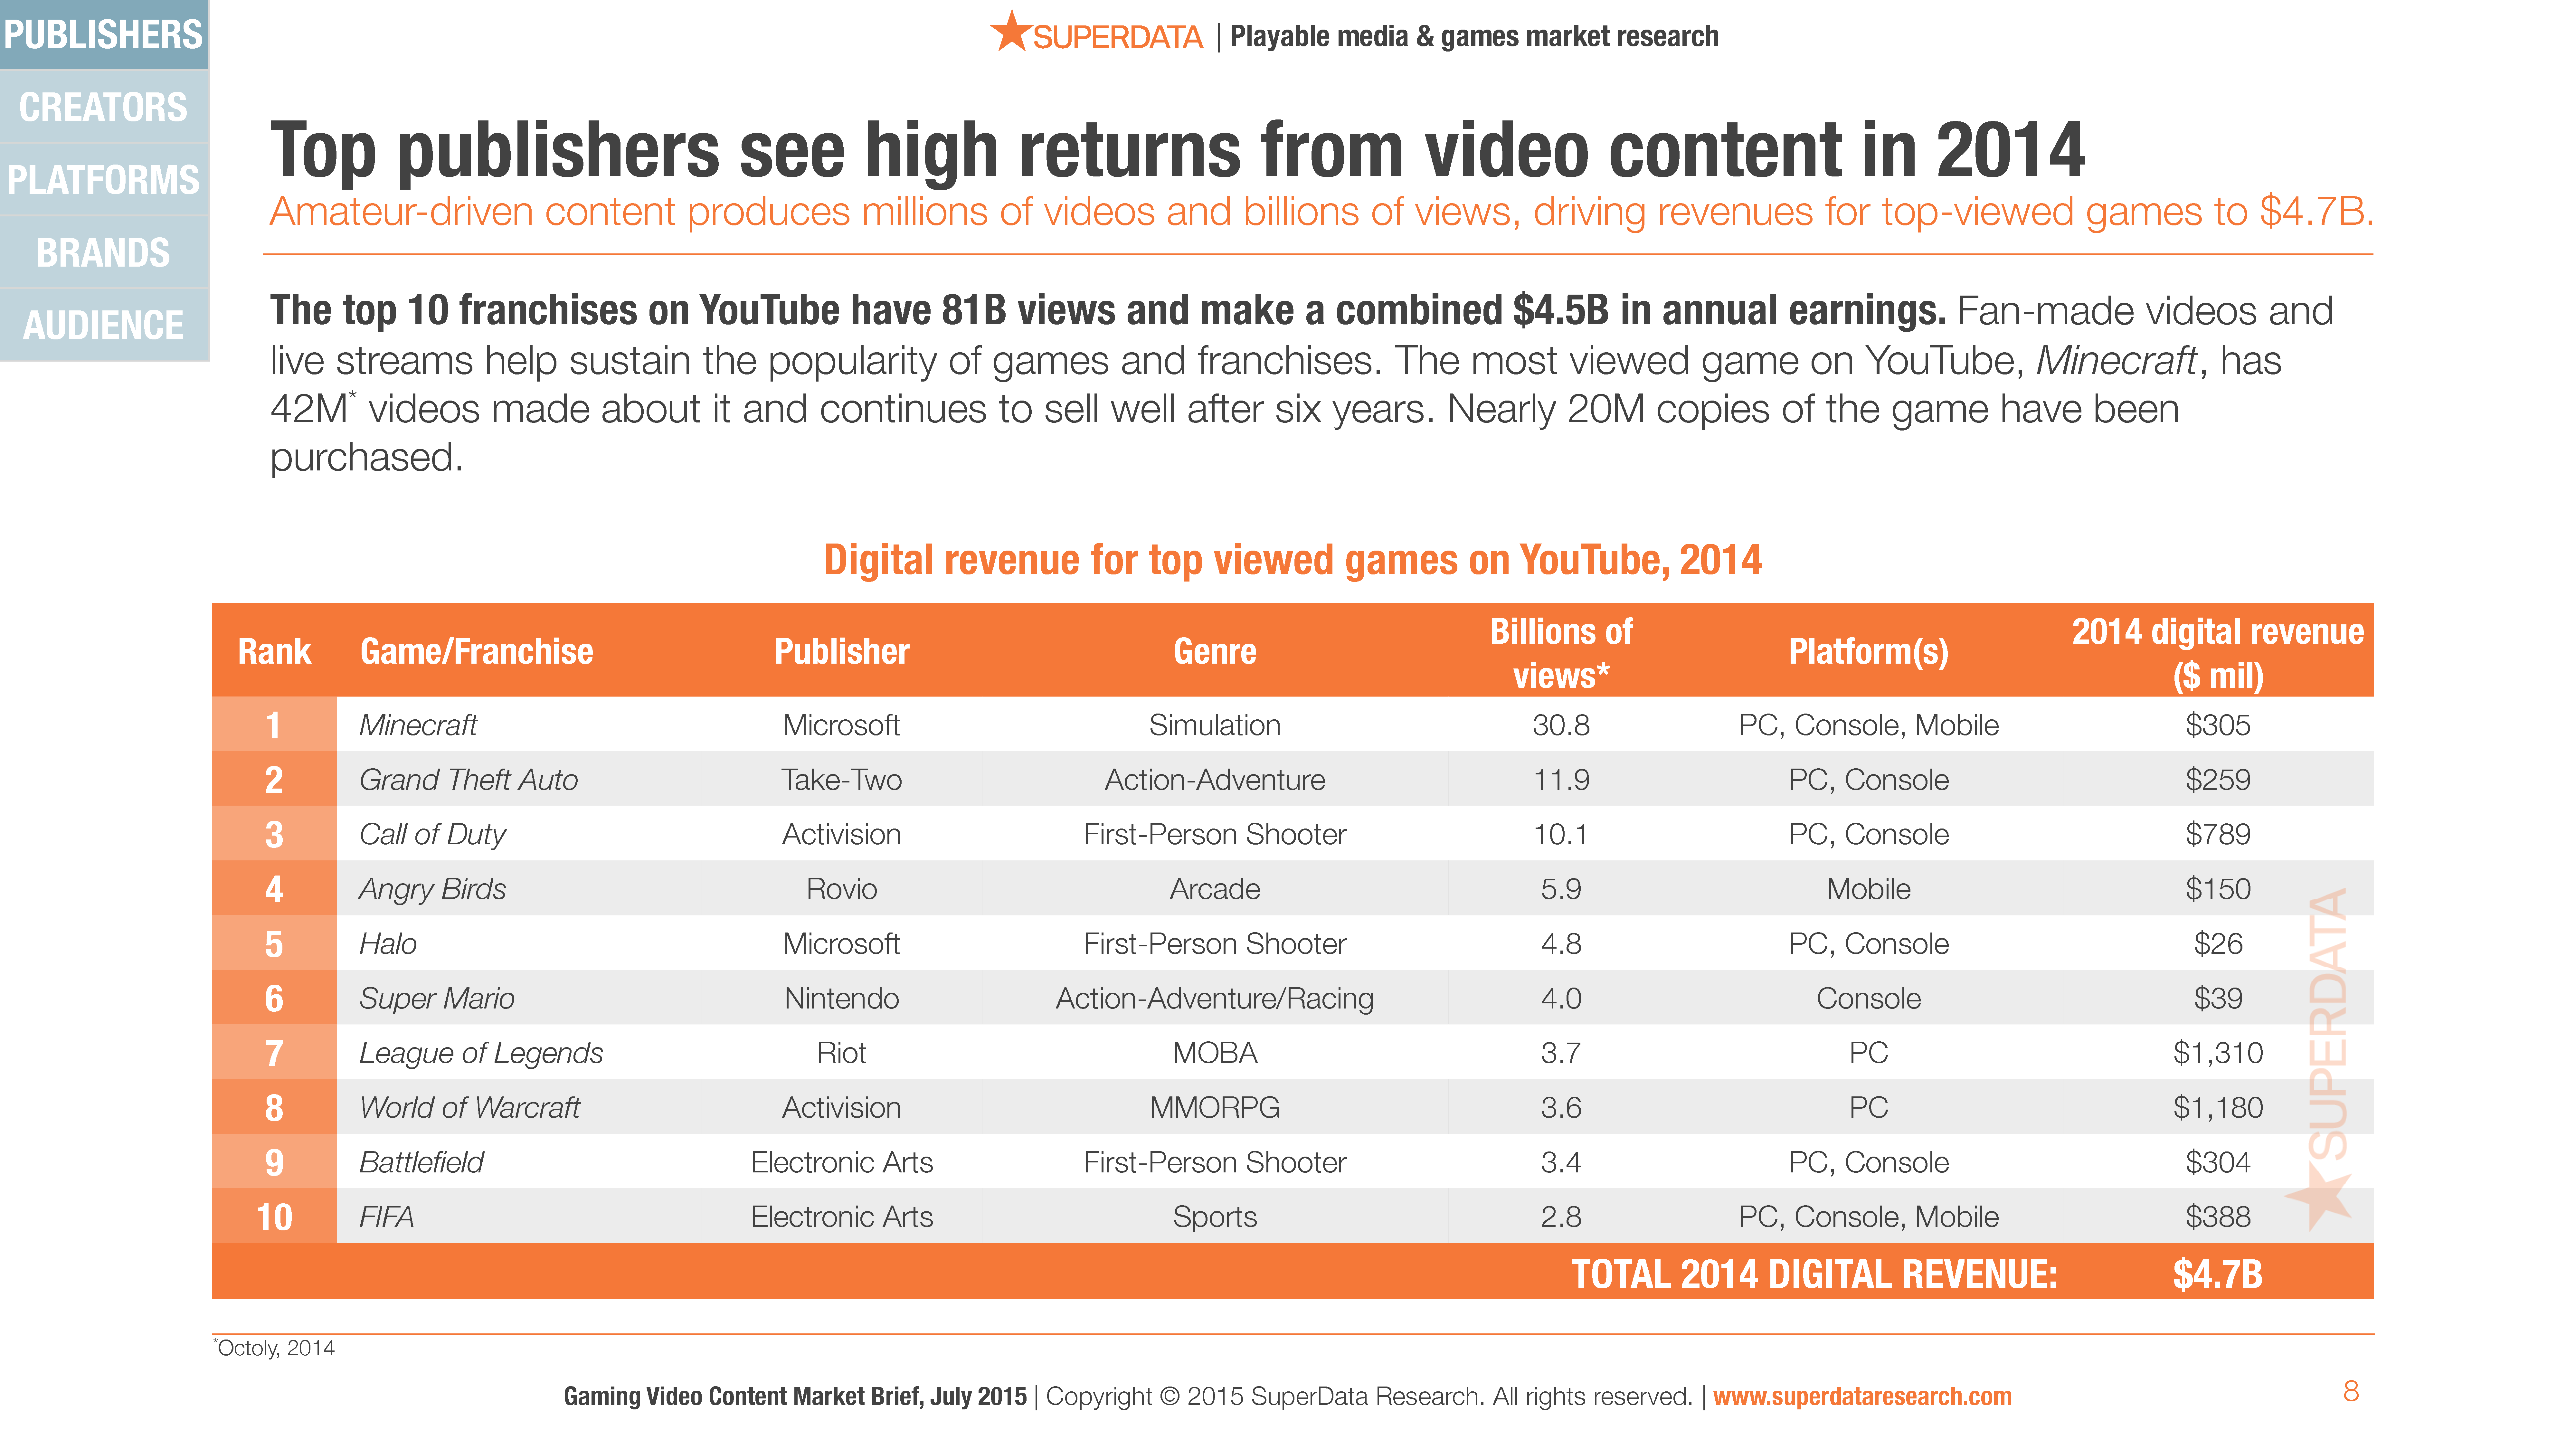 SuperData_Deliverable_Gaming_Video_Content_Market_Brief_2015_(1)-8